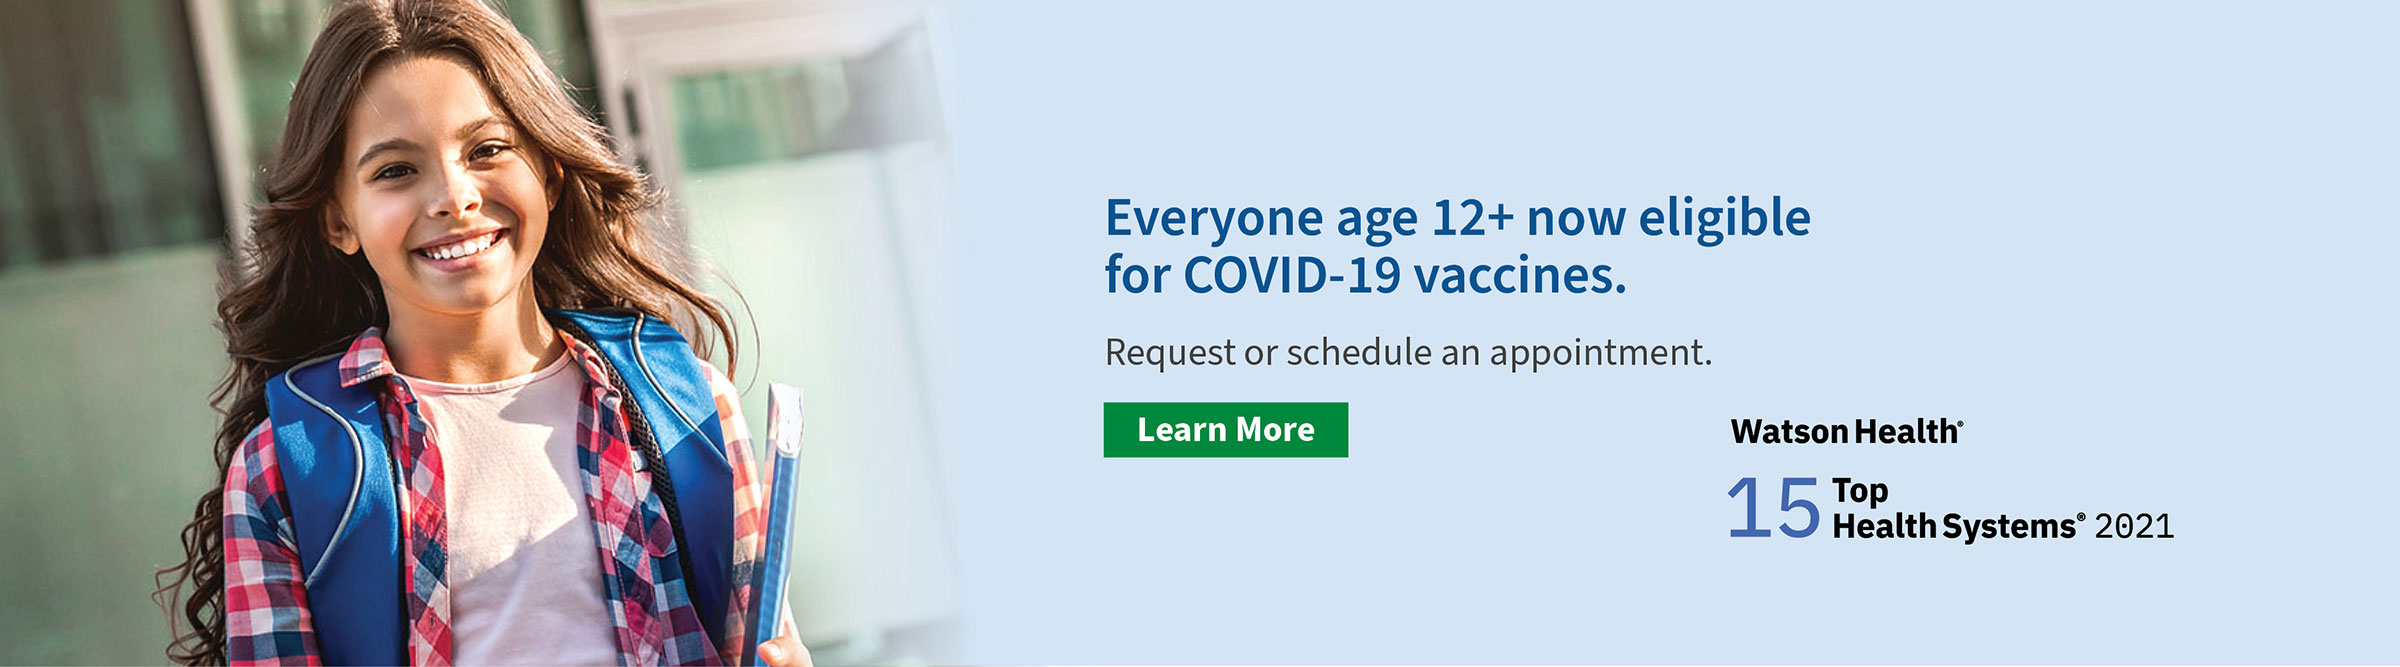 Everyone age 12+ now eligible for COVID-19 vaccines.